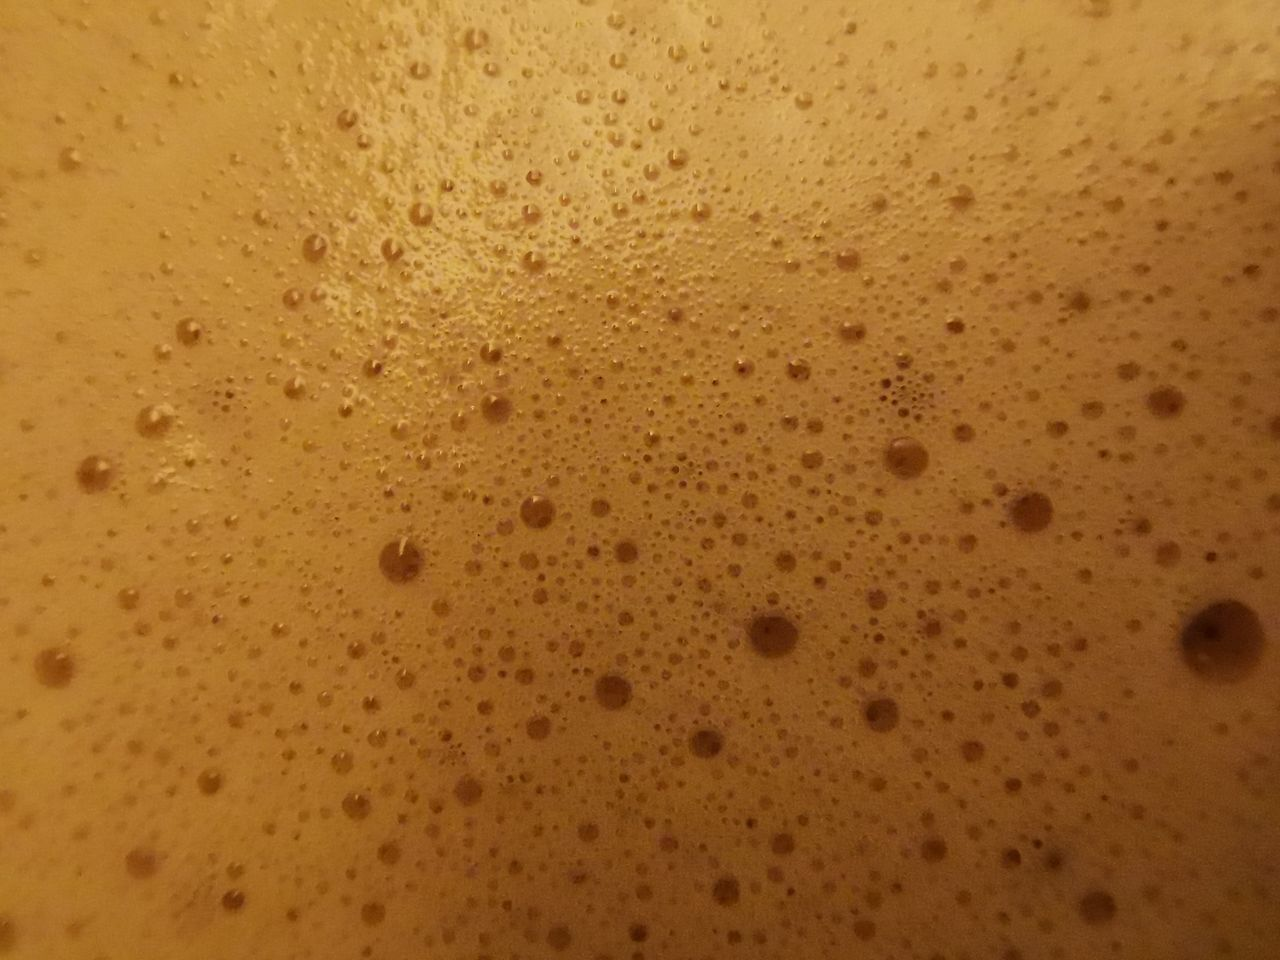 drink, food and drink, refreshment, coffee, full frame, frothy drink, coffee - drink, backgrounds, close-up, cup, no people, mug, bubble, still life, freshness, coffee cup, indoors, brown, hot drink, food, glass, non-alcoholic beverage, latte, froth